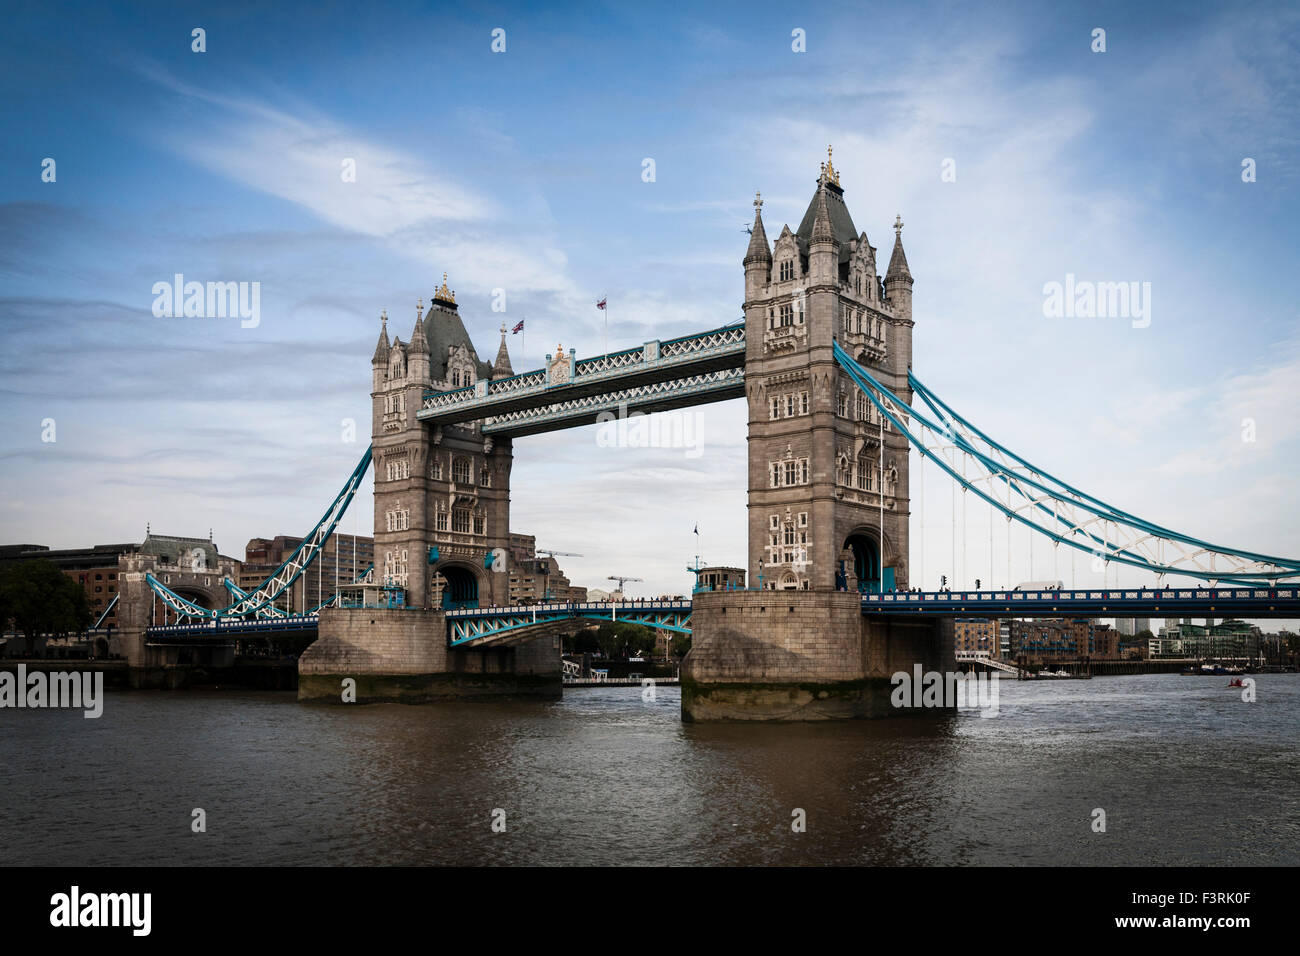 Tower Bridge, Londres, Royaume-Uni Photo Stock